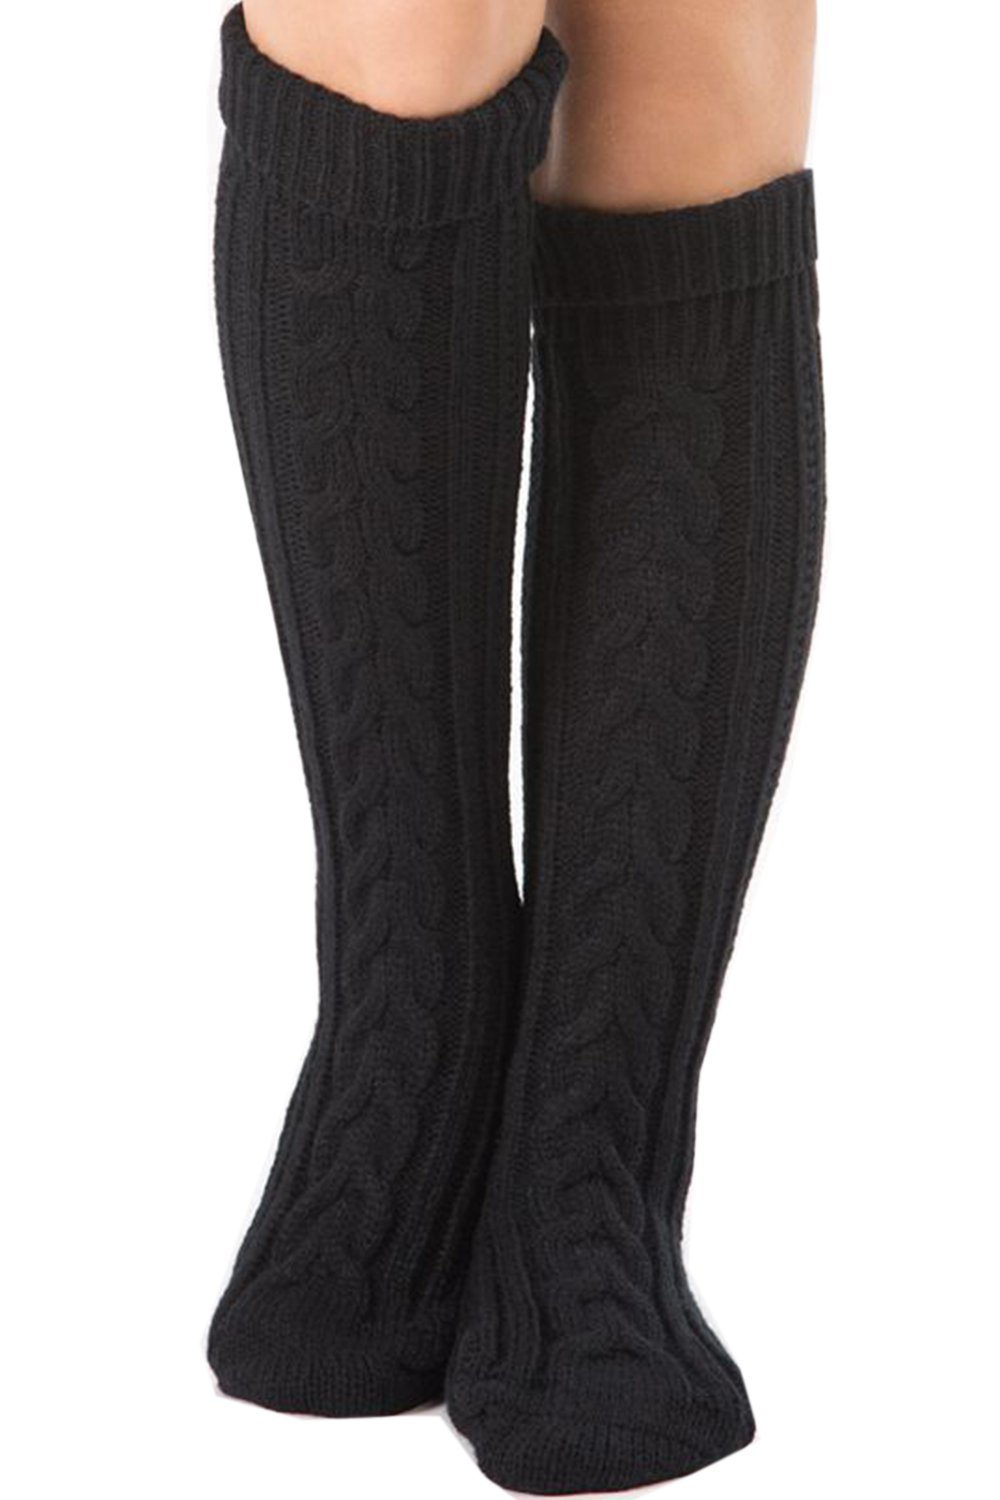 Womens Cable Knit Long Boot Socks Over Knee High Winter Leg Warmers